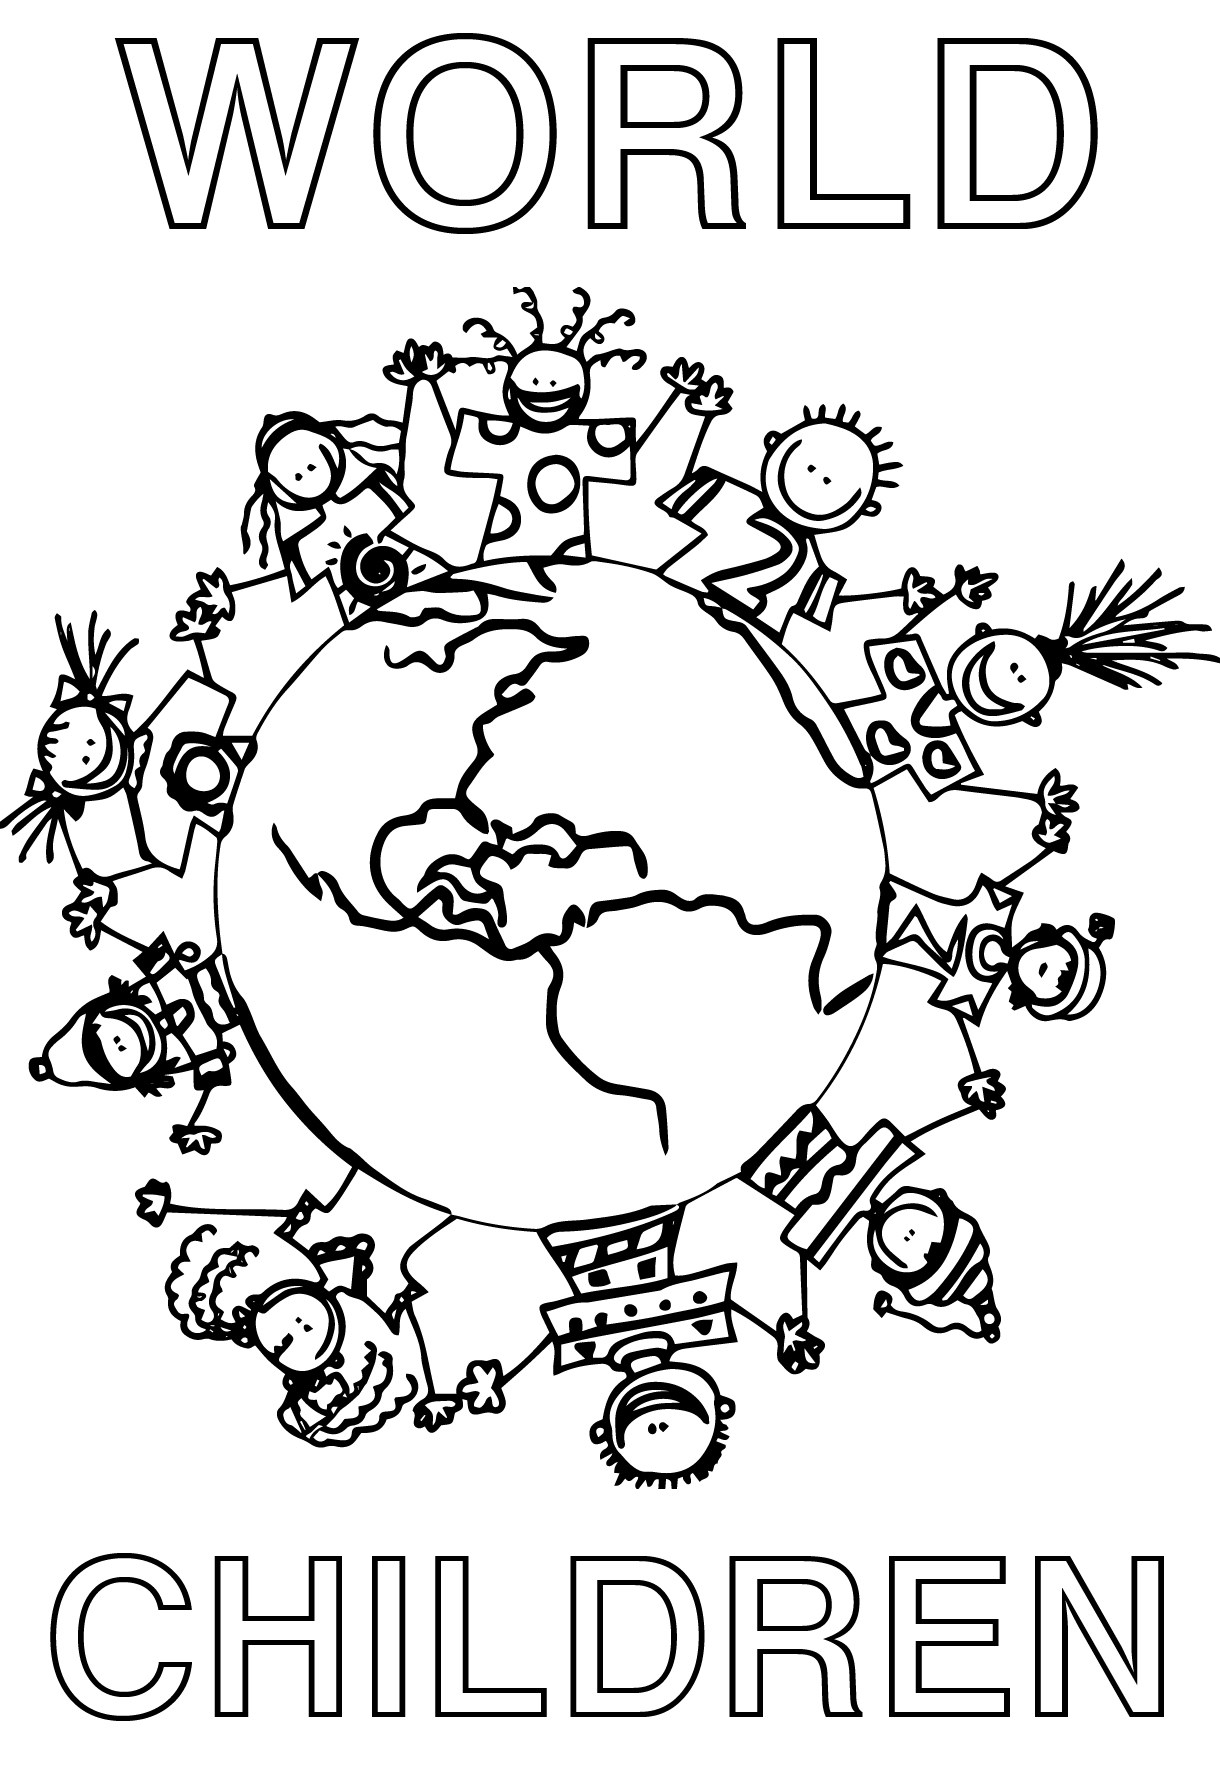 flags of the world printable coloring pages flags of the world printable coloring pages at getdrawings flags coloring the pages world of printable